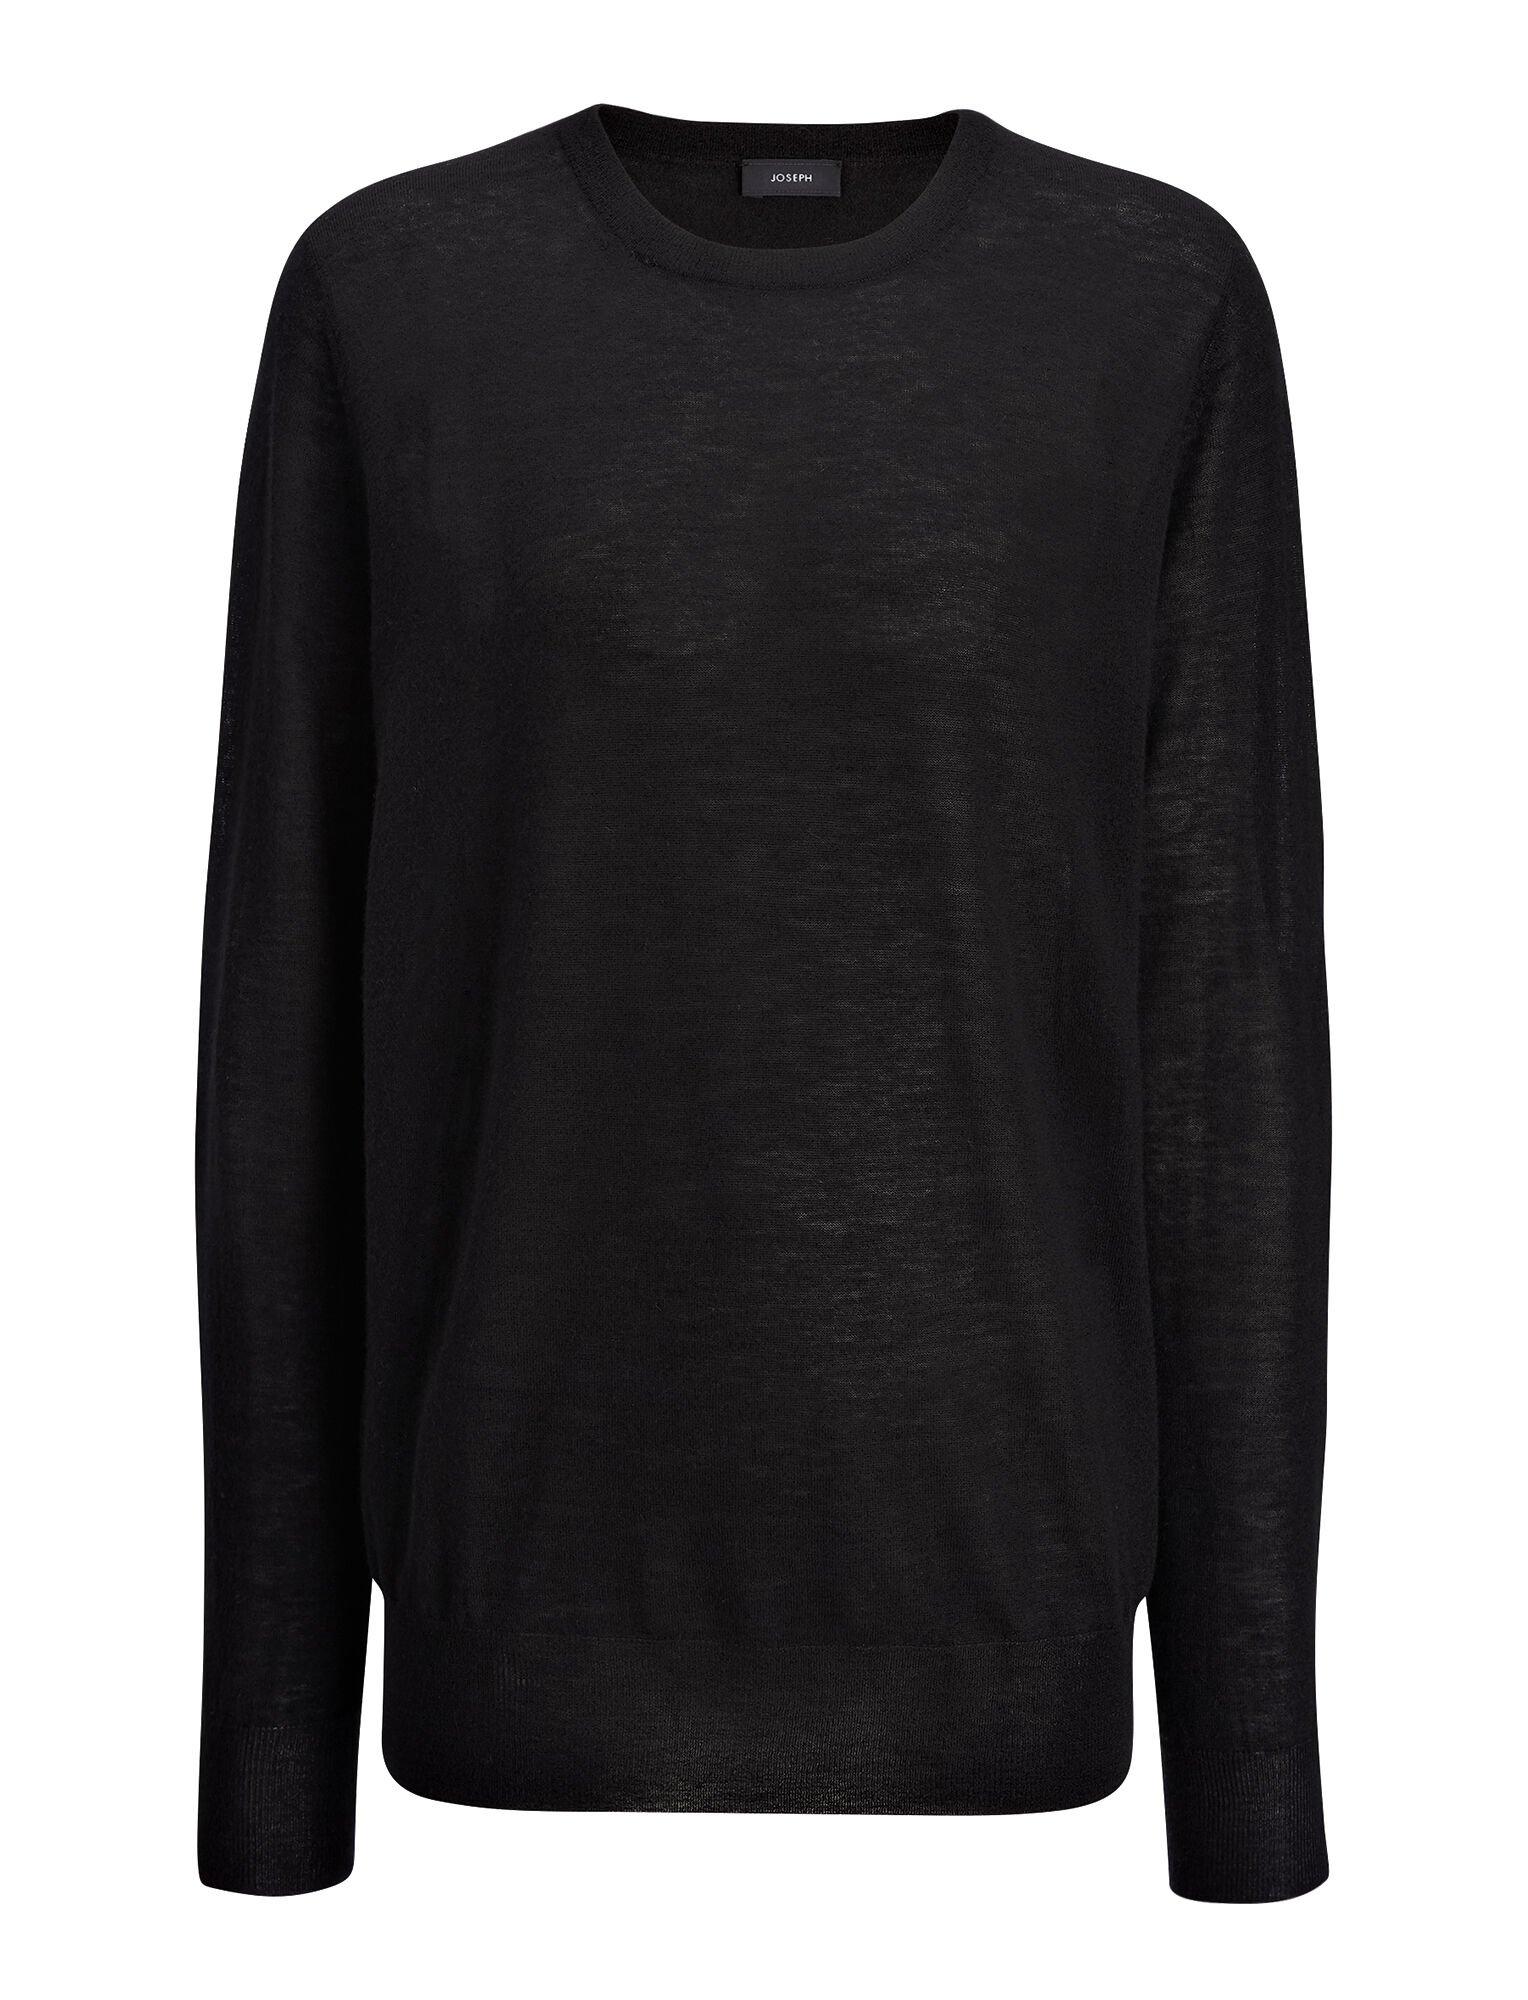 Joseph, Cashair and Patch Sweater, in BLACK